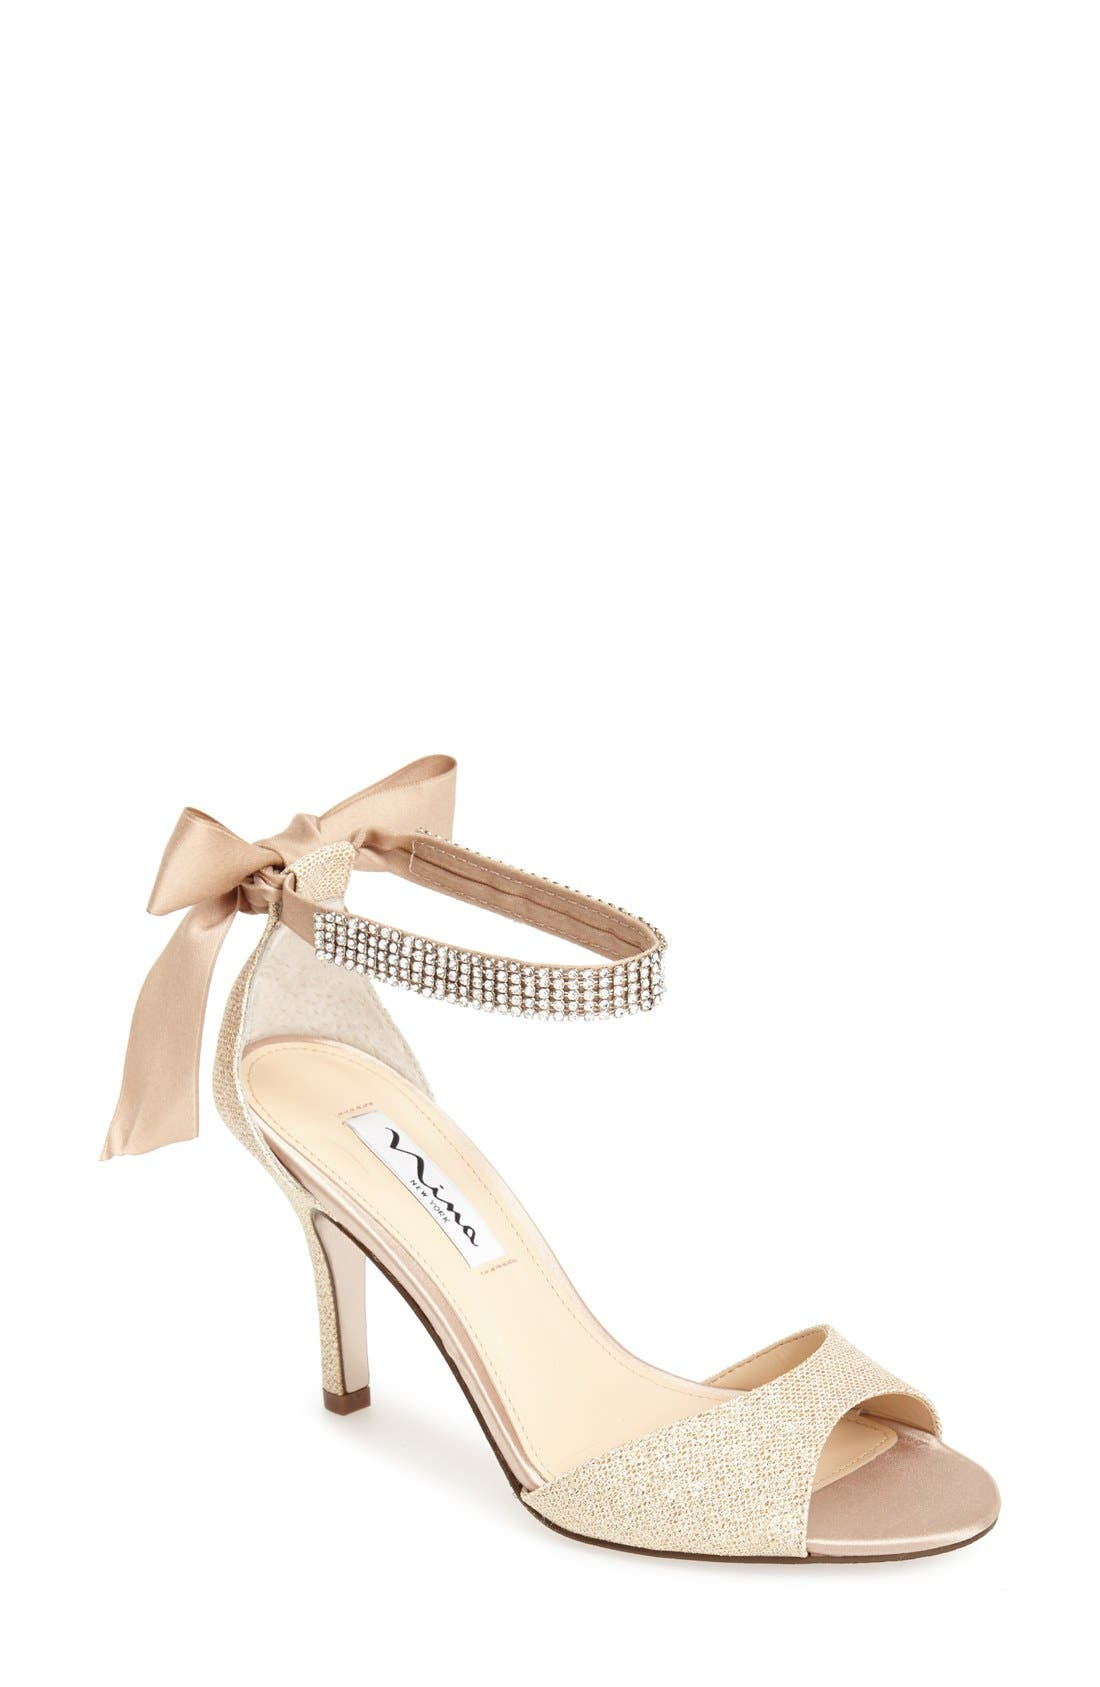 NINA, 'Vinnie' Crystal Embellished Ankle Strap Sandal, Main thumbnail 1, color, CHAMPAGNE GOLD